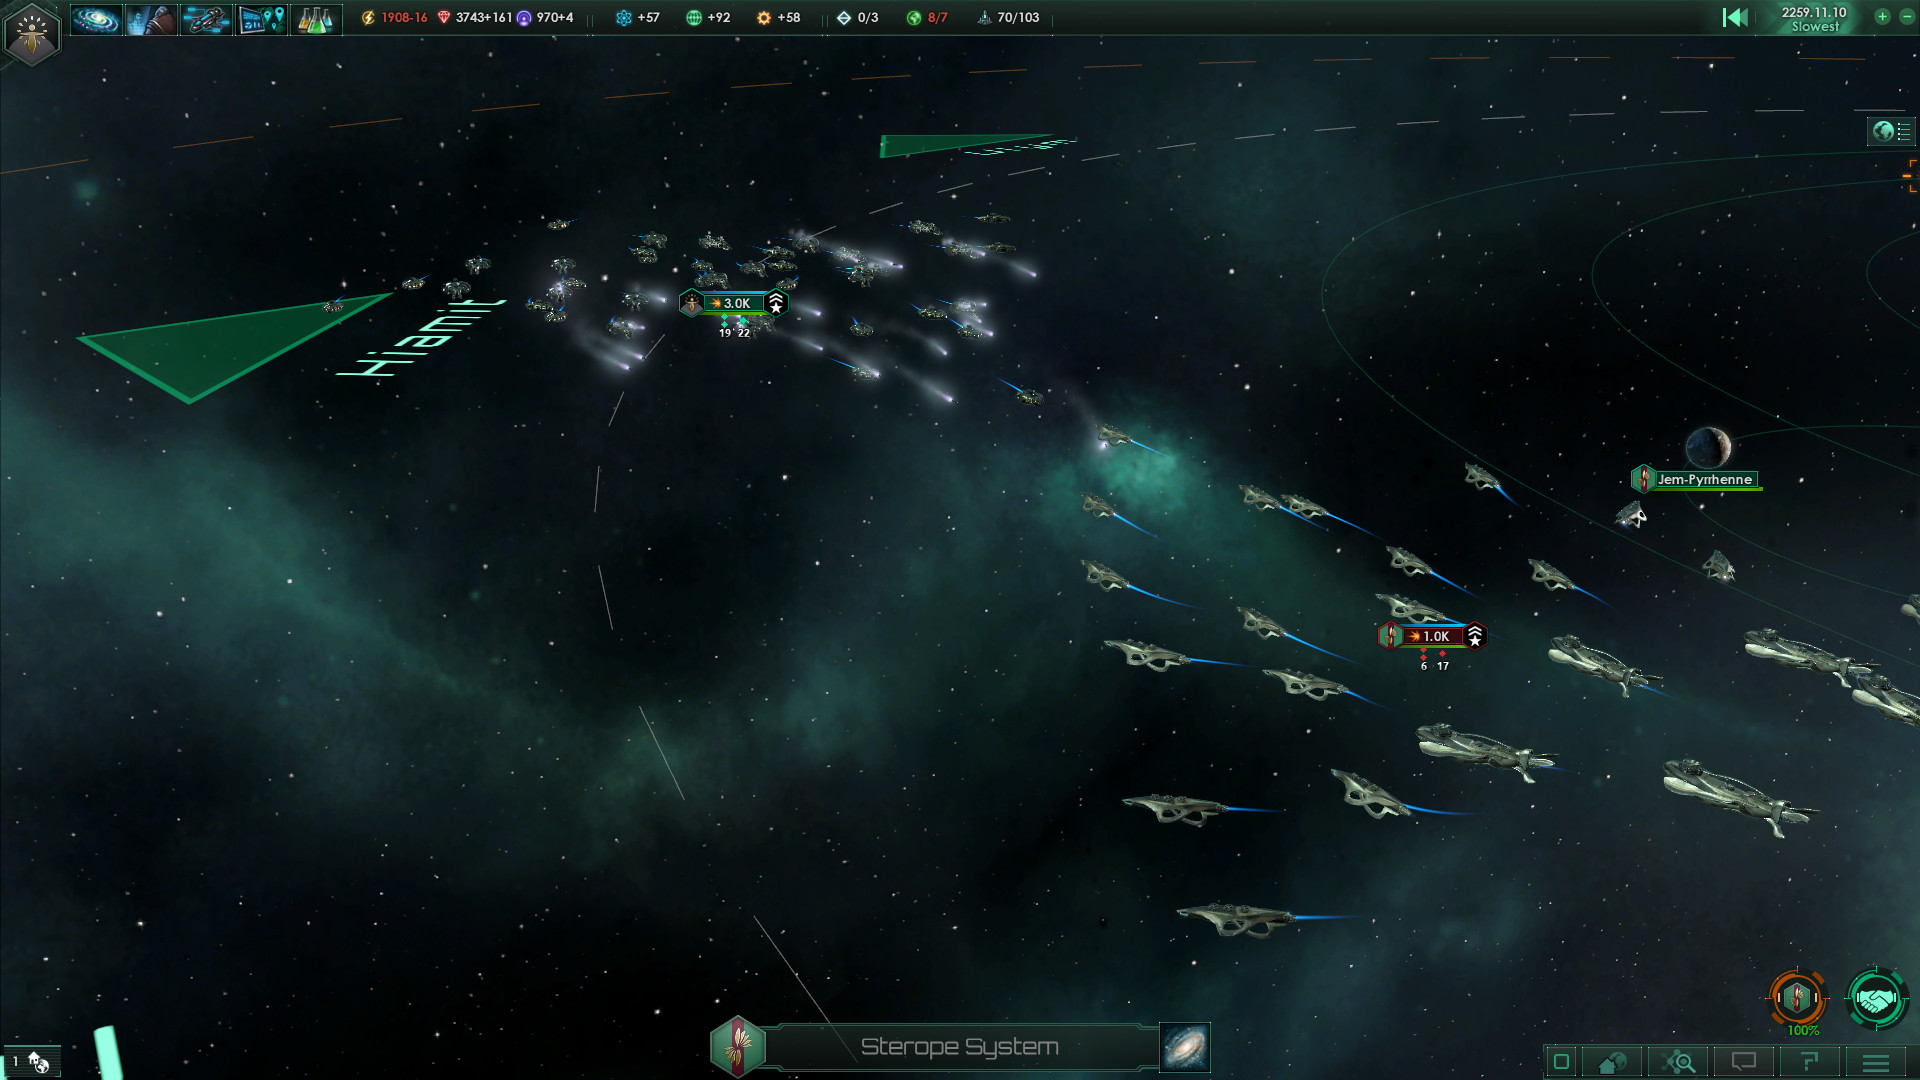 Stellaris Features